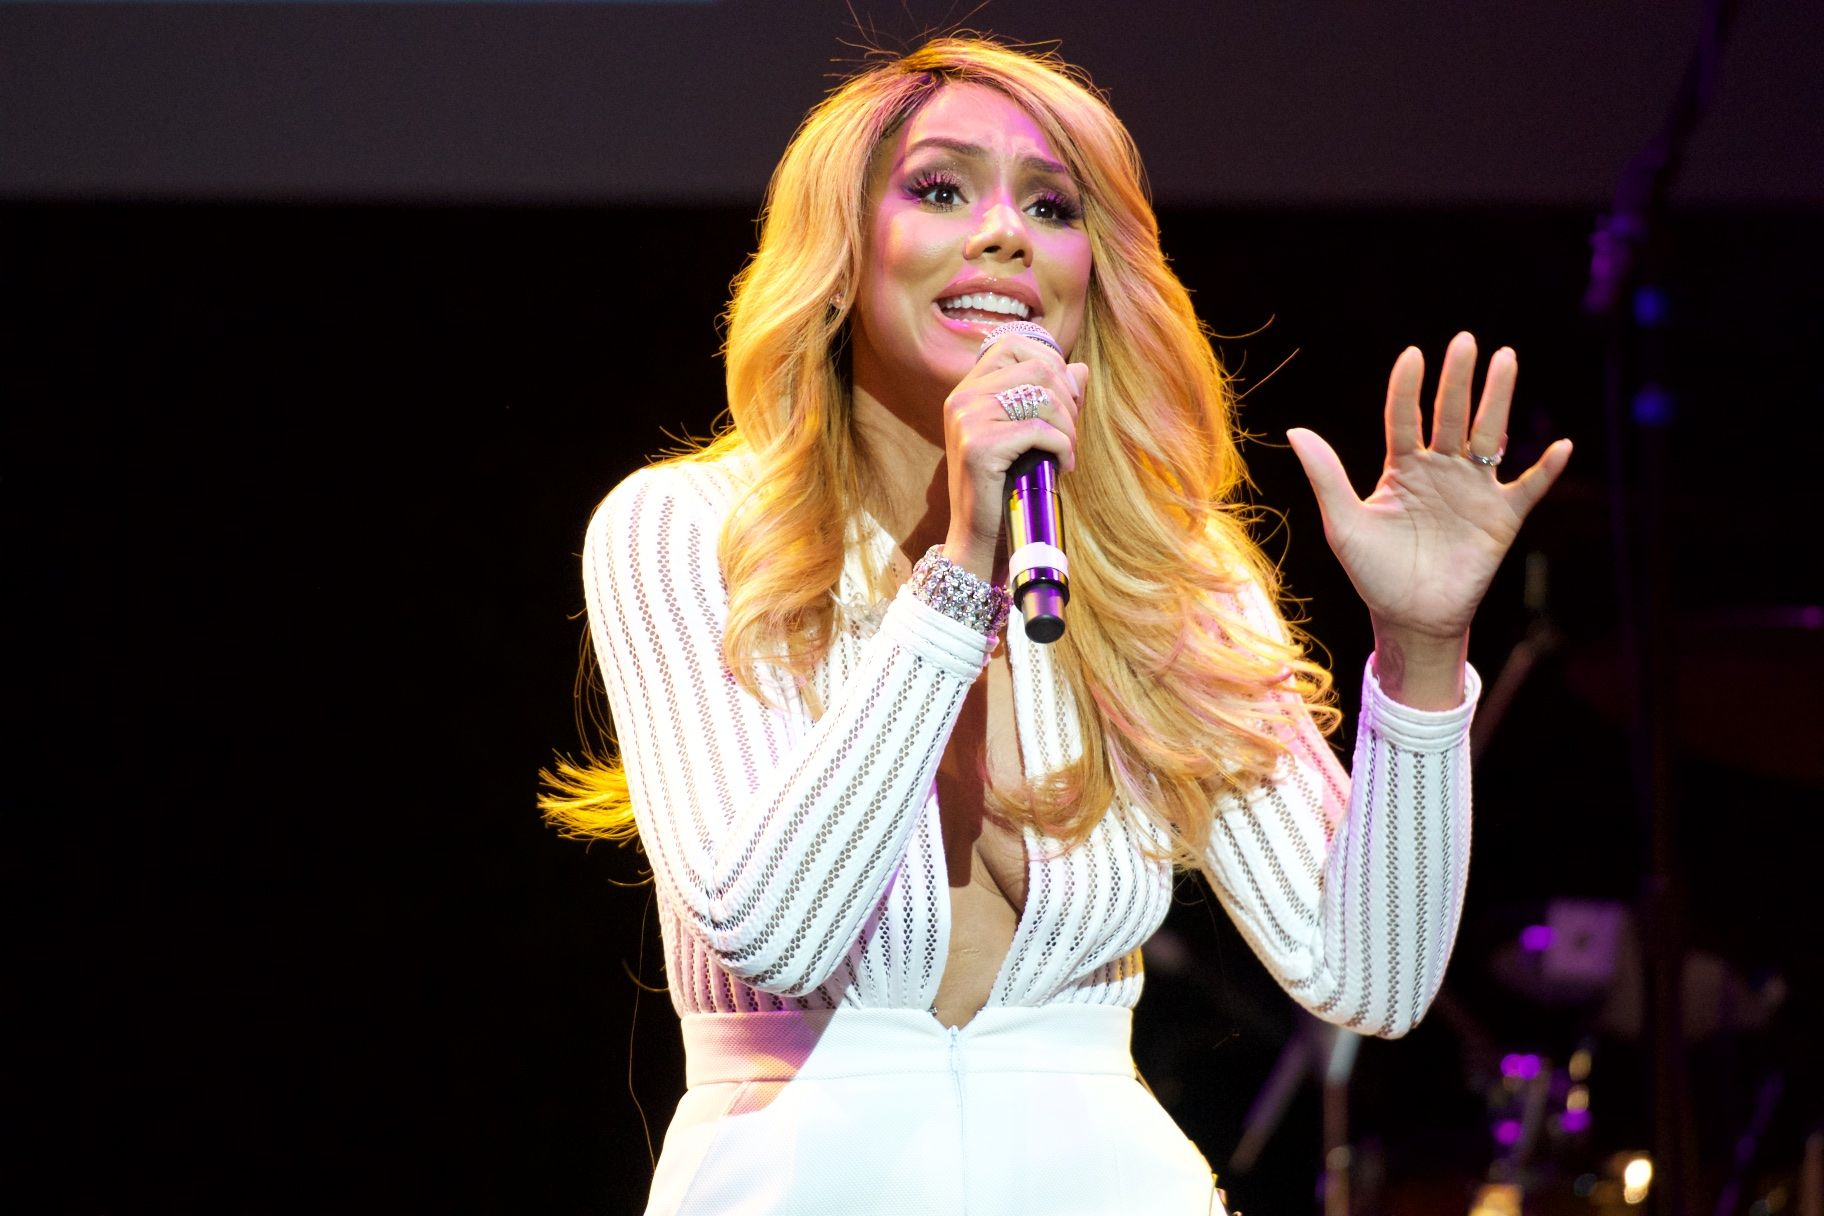 Tamar Braxton Shares A Video From One Of Her Concert's And Calls Herself 'Superwoman'